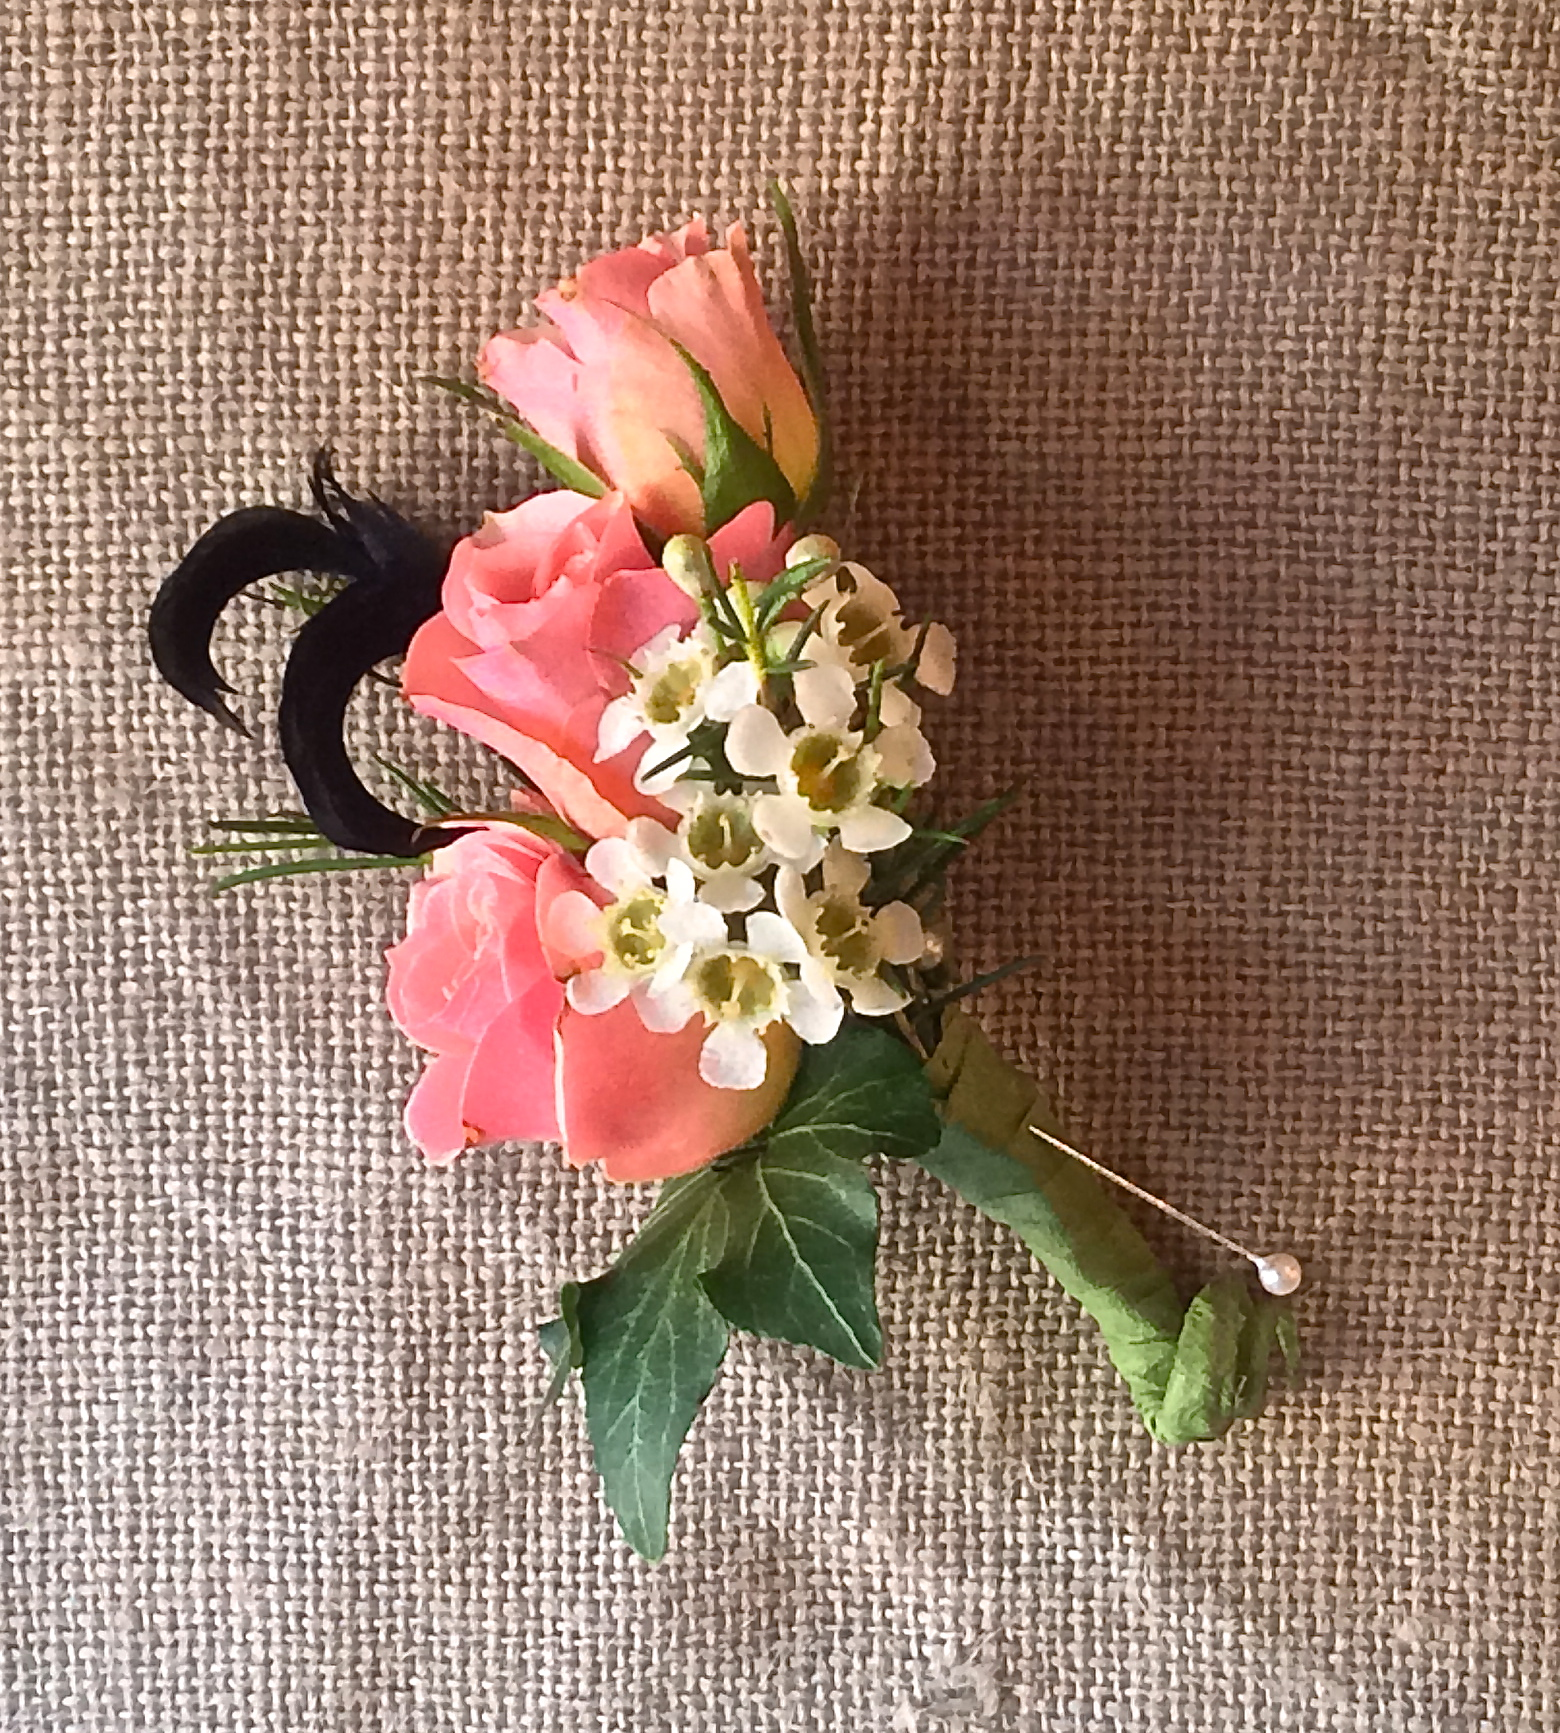 Spray roses, waxflower, ivy and feathers.